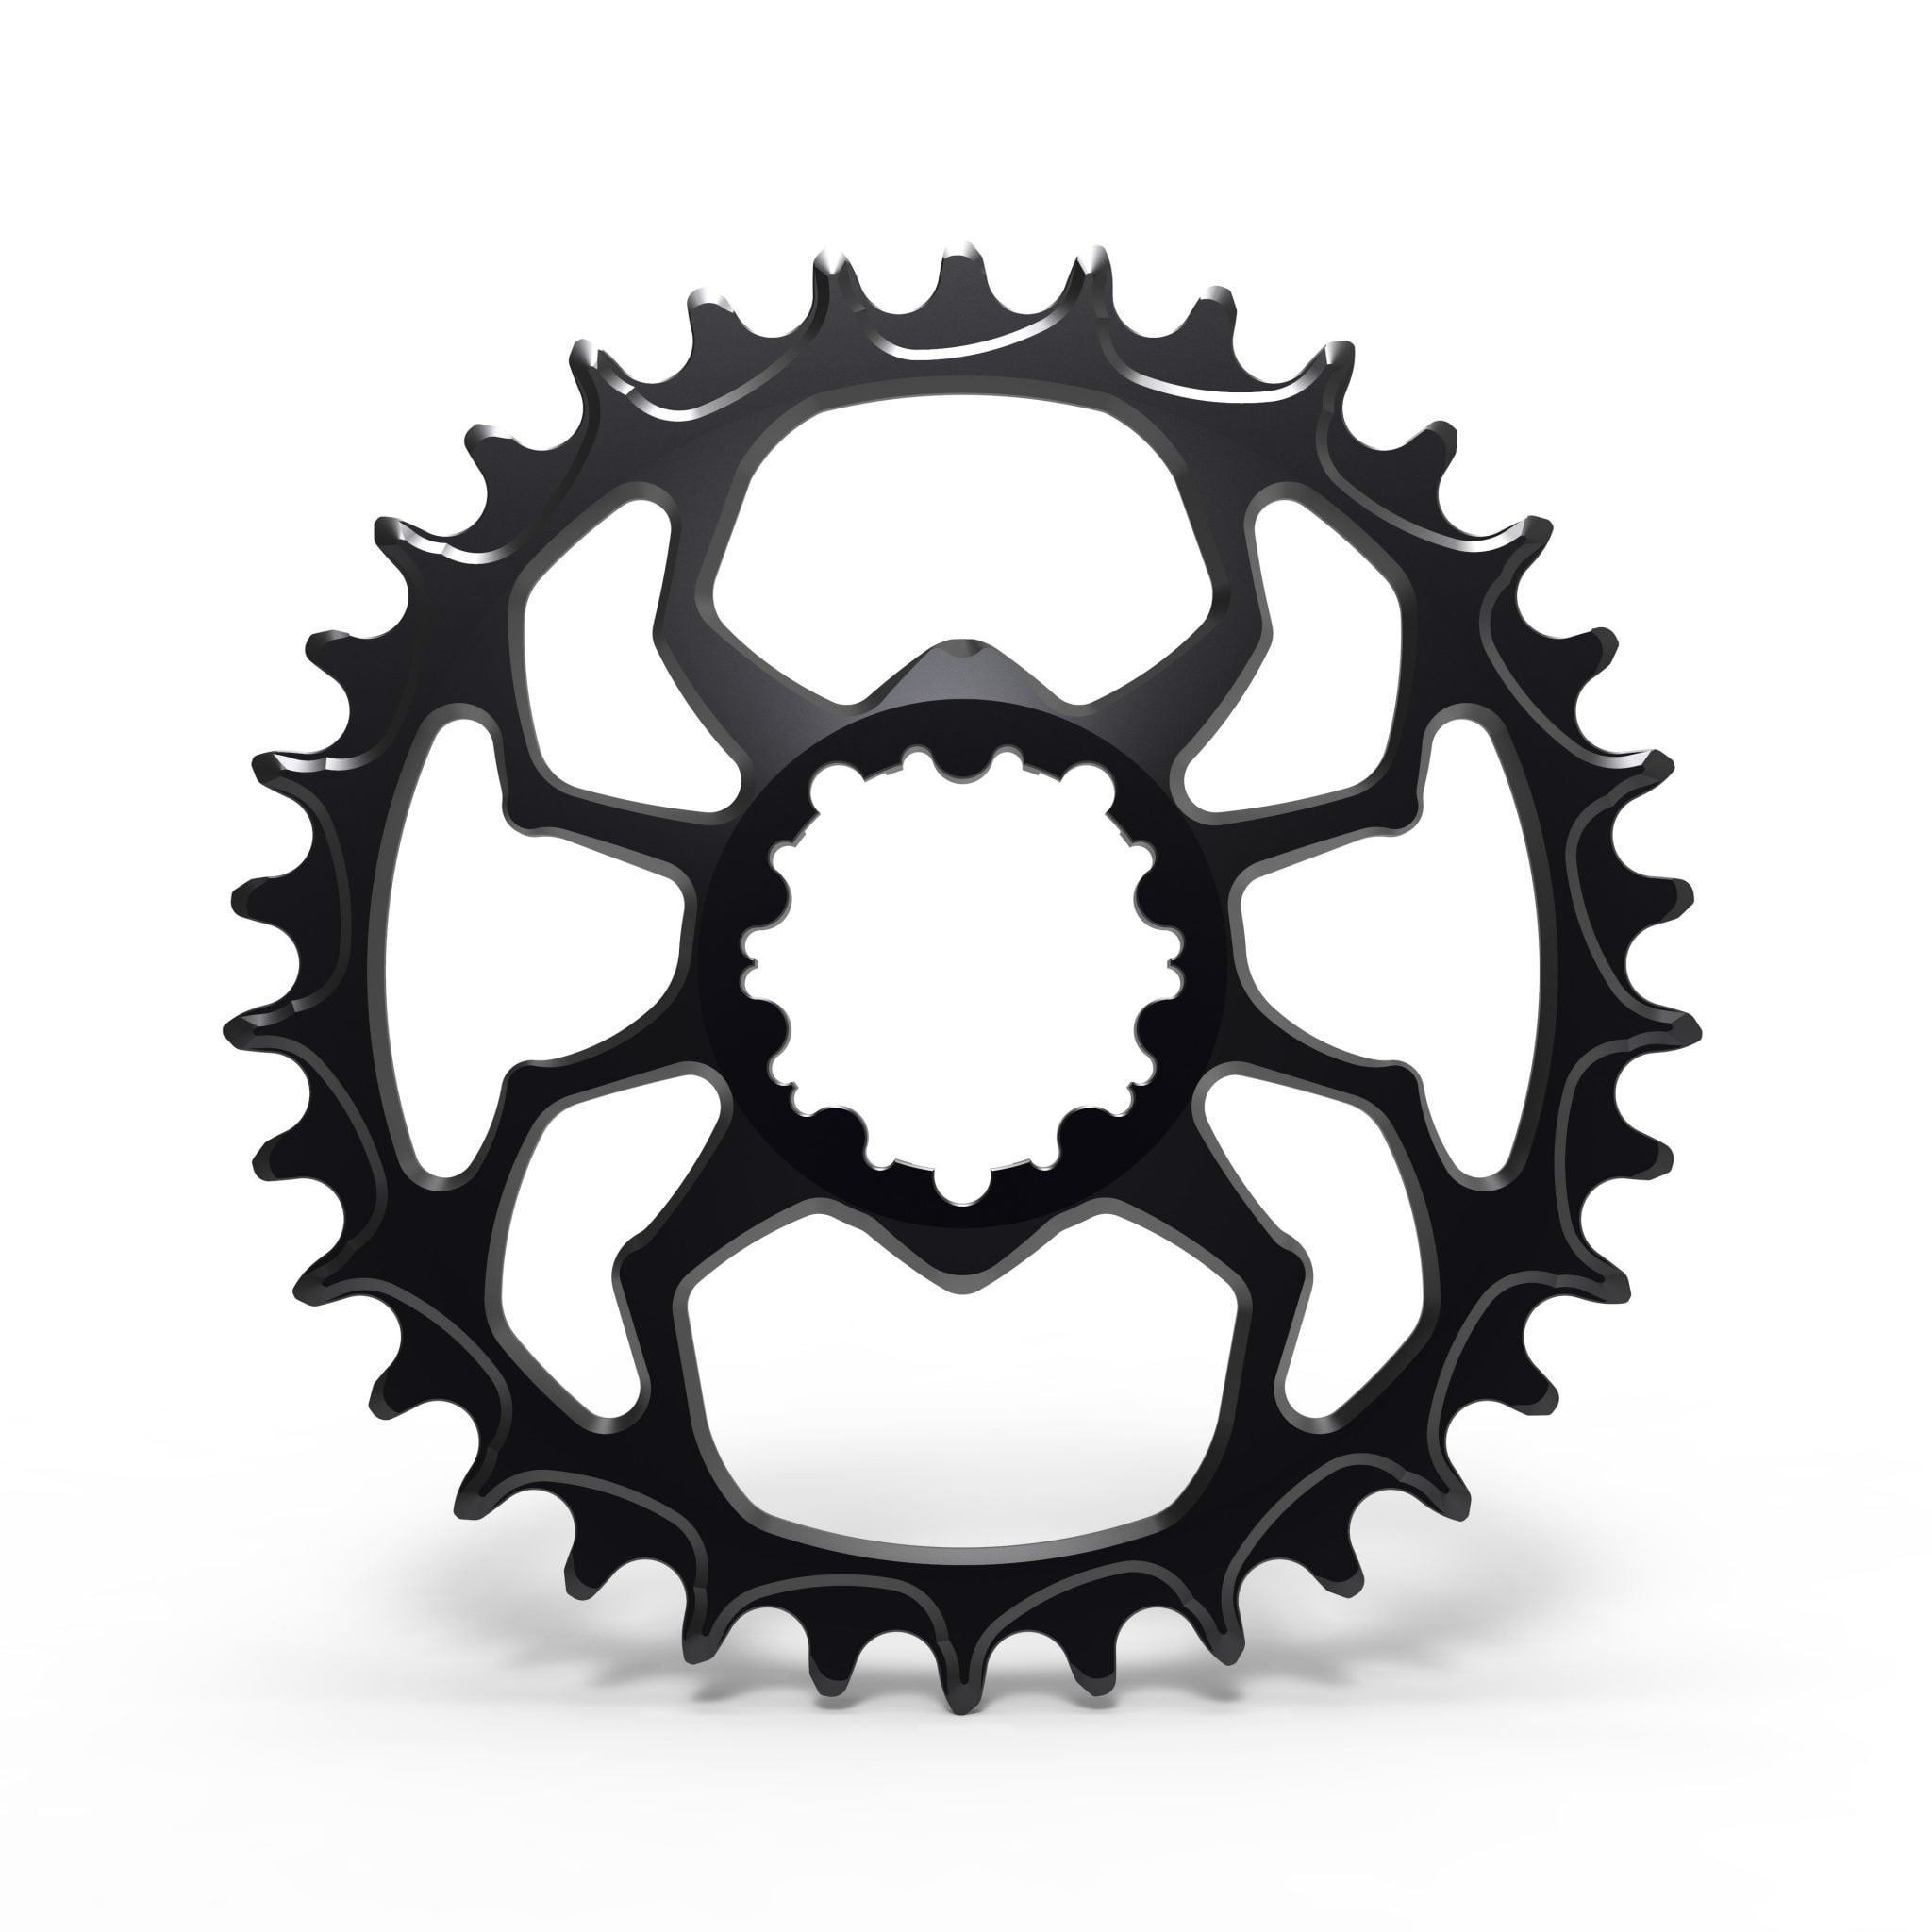 34T_R_Boost_Sram_3b_Spider_black_1.546